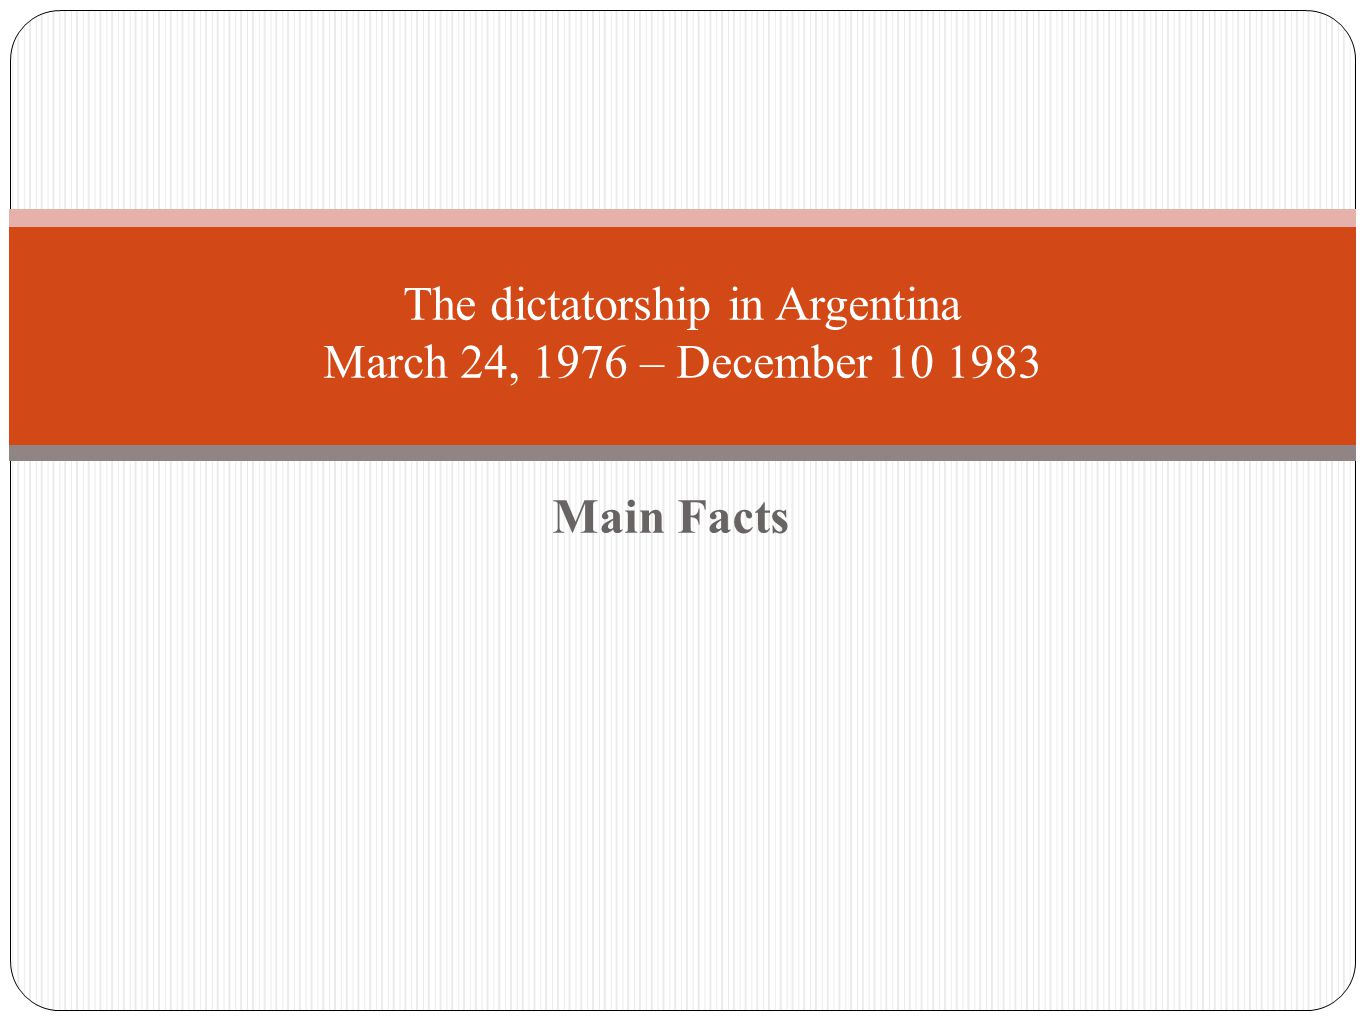 March 24, 1976 On March 24, 1976, Isabel Perón was deposed and arrested.